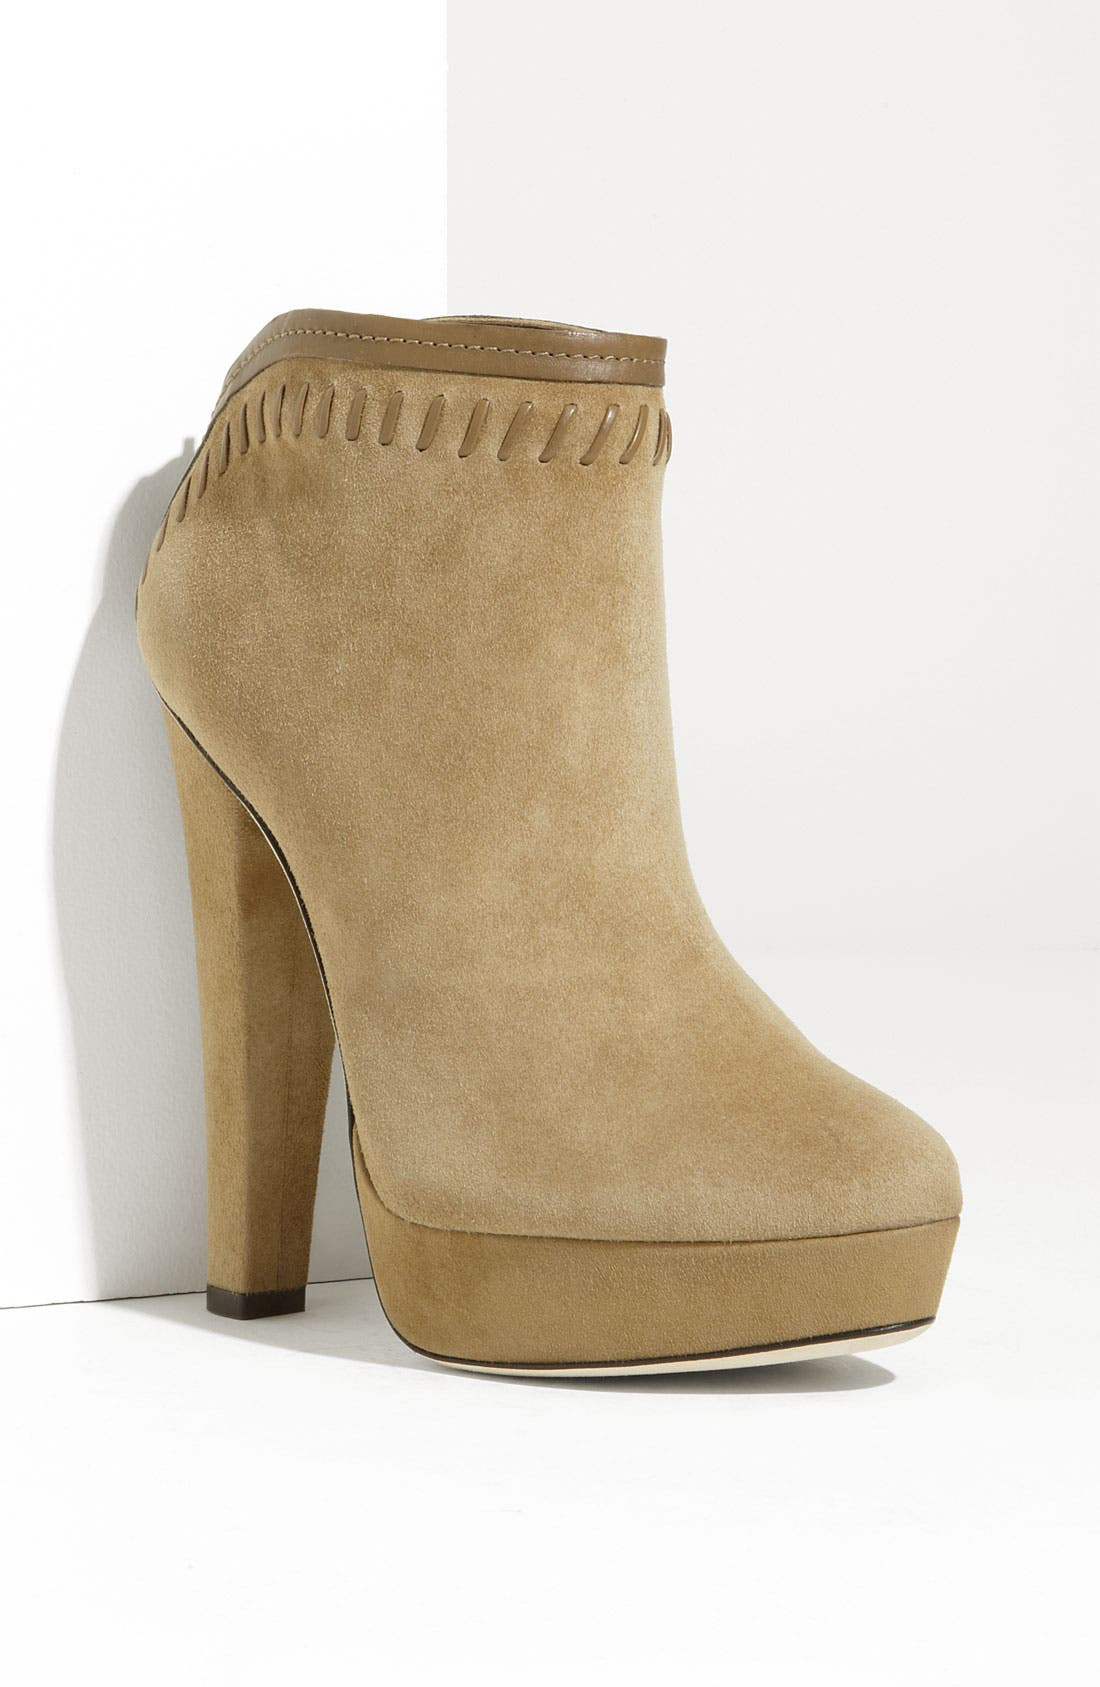 Alternate Image 1 Selected - Jimmy Choo 'Evans' Whipstitch Ankle Boot